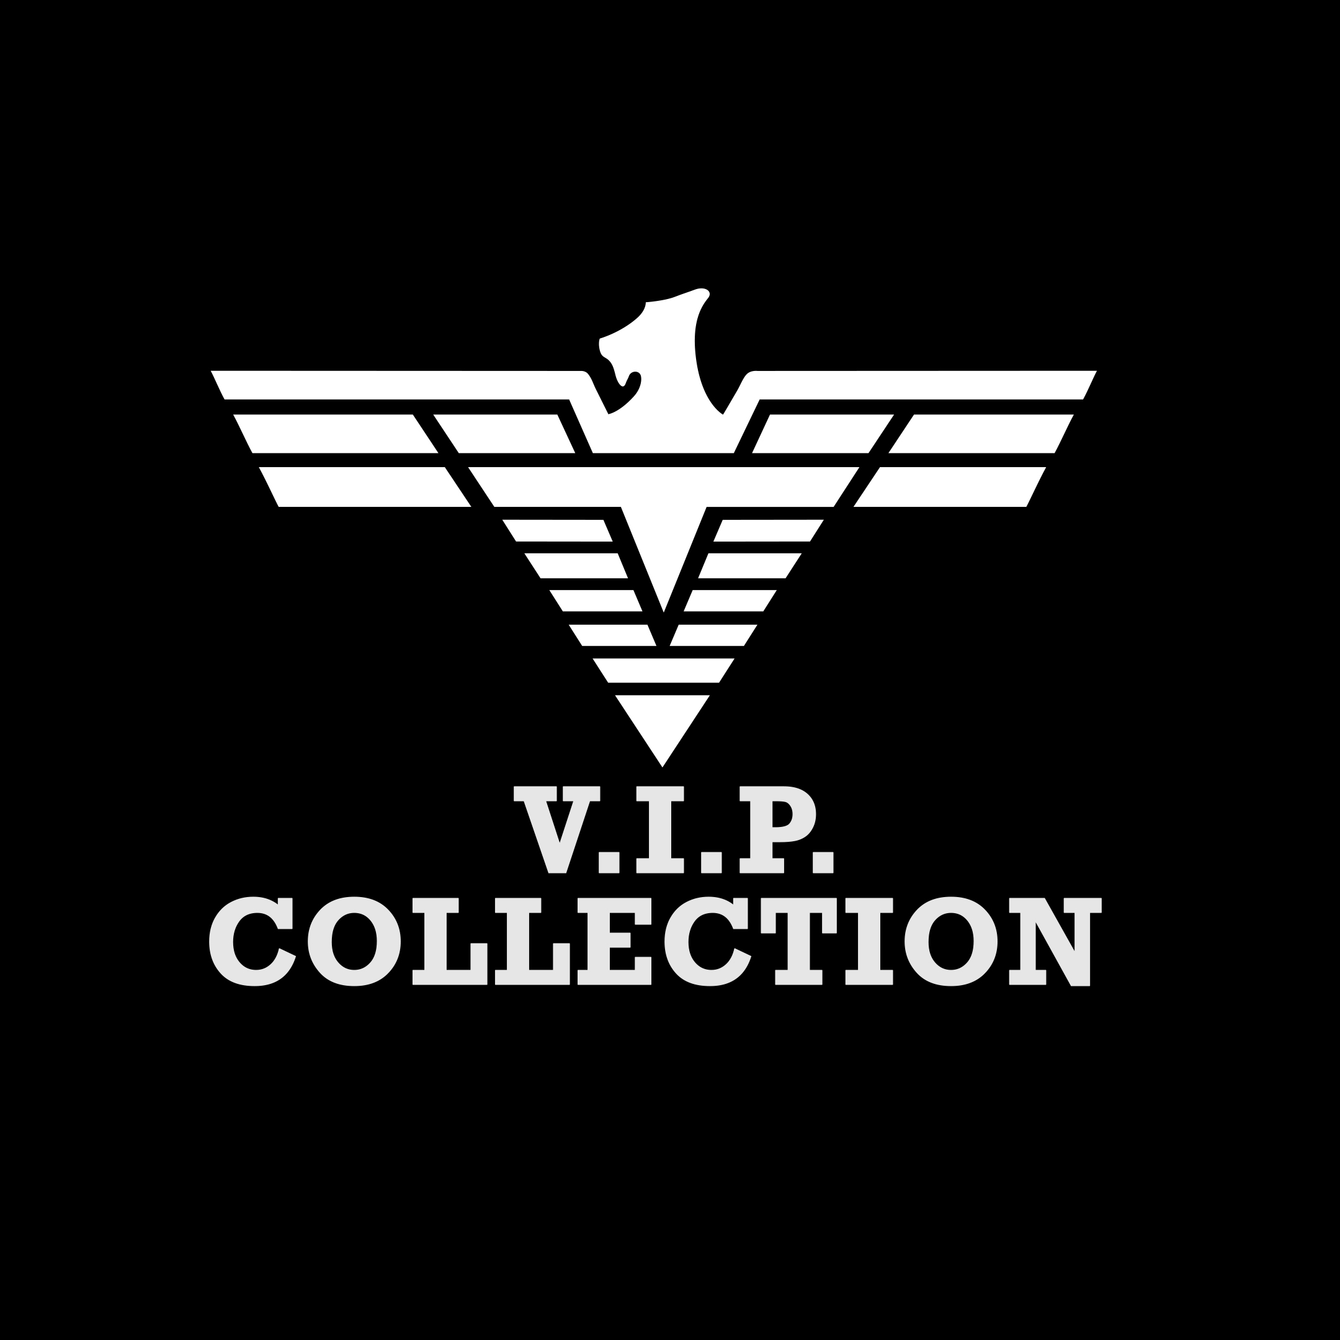 V.I.P Collection Clothing